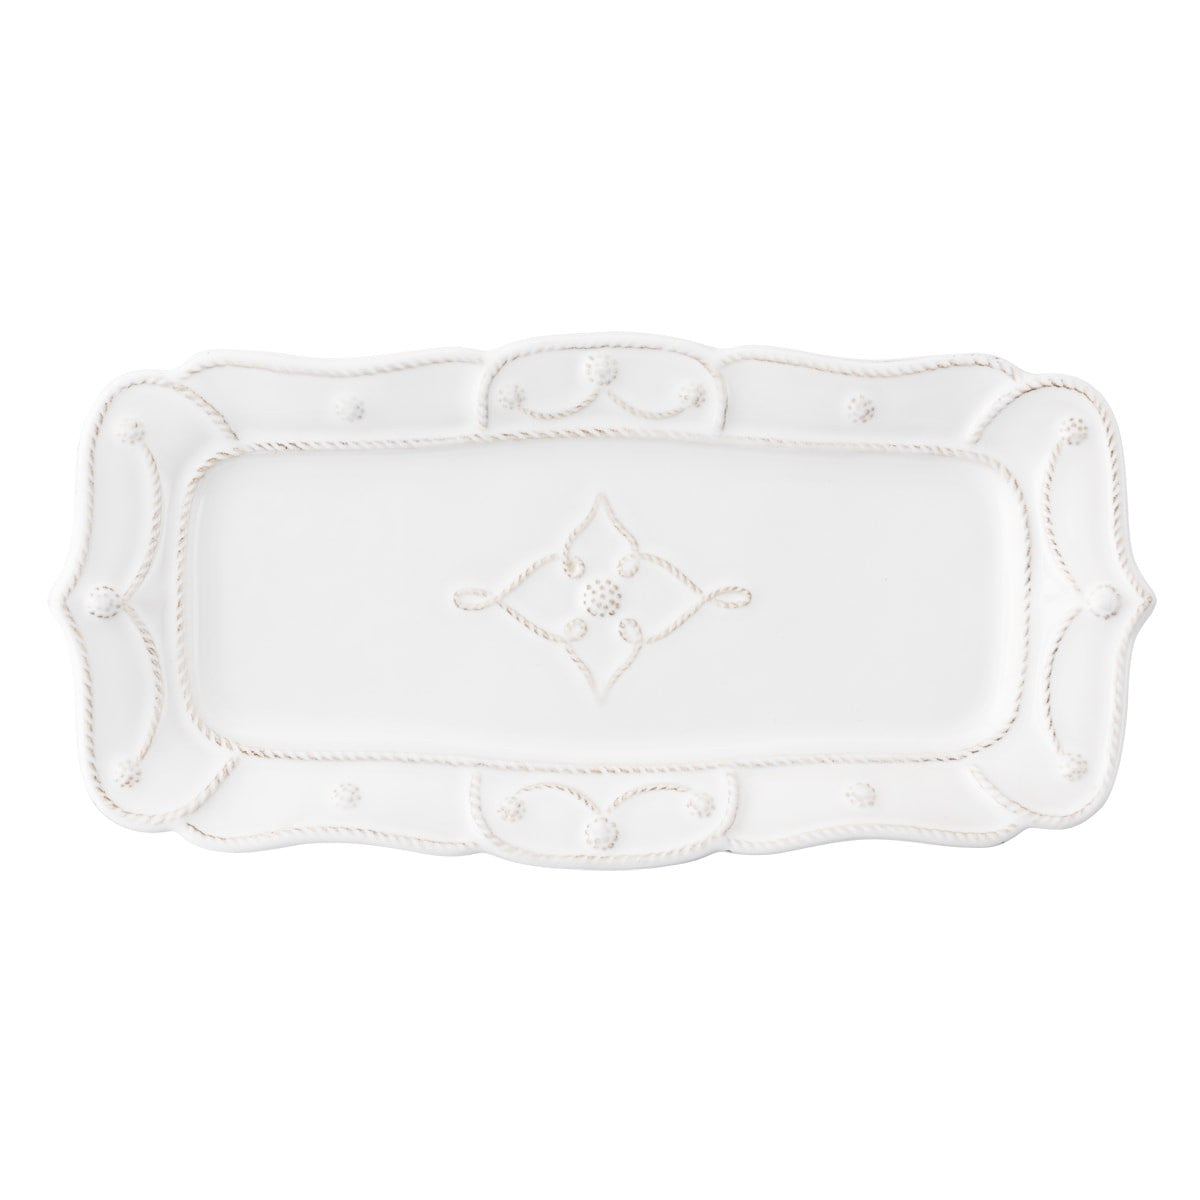 Jardins du Monde Hostess Tray